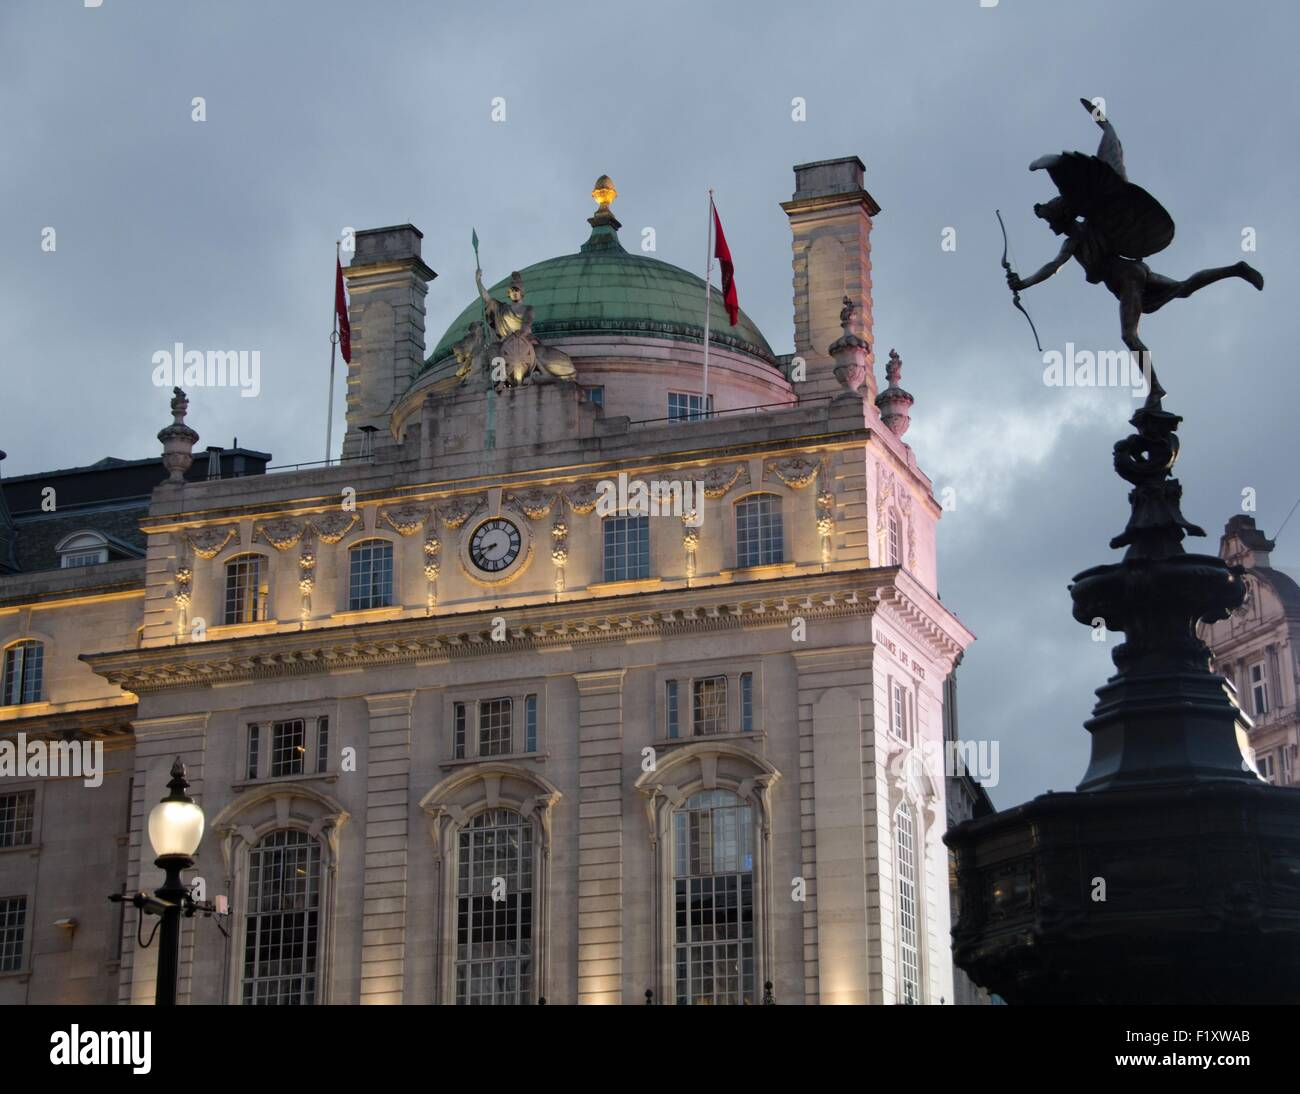 The Alliance Life Office behind the Eros statue in Piccadilly Circus, London, UK - Stock Image